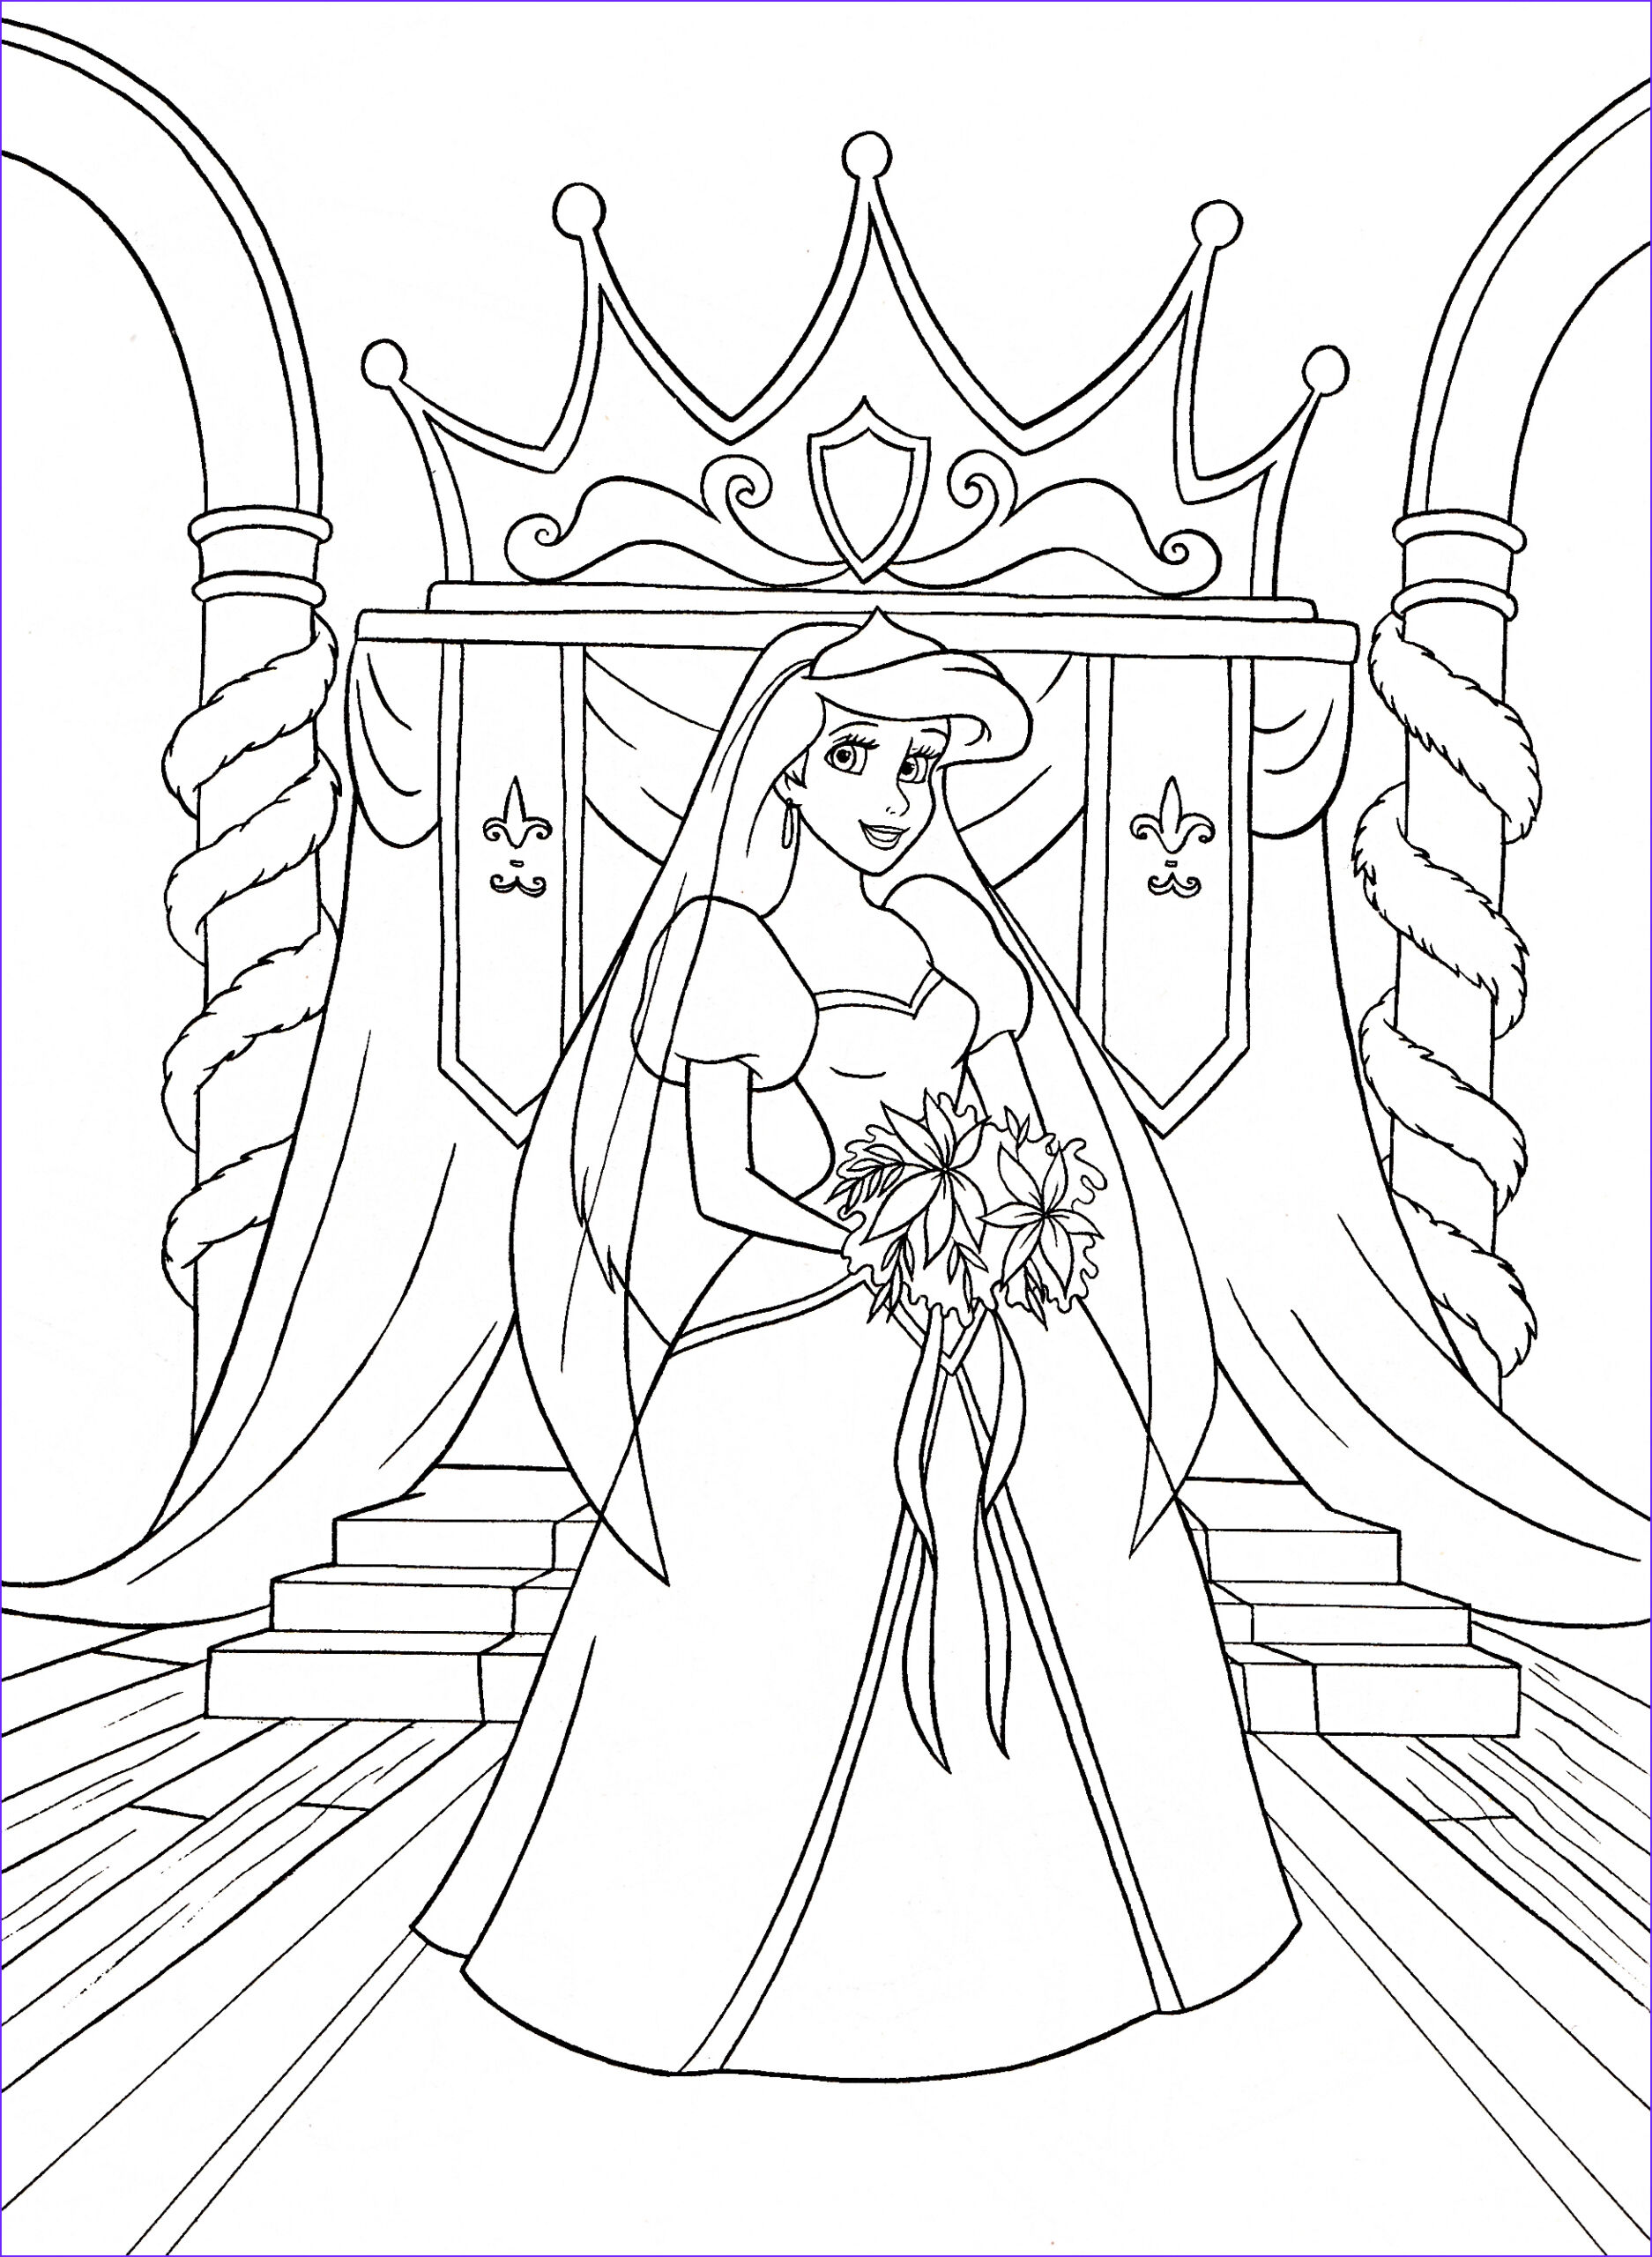 Coloring Book Ideas Beautiful Stock 48 Printable Disney Ariel Coloring Pages & Ariel Party